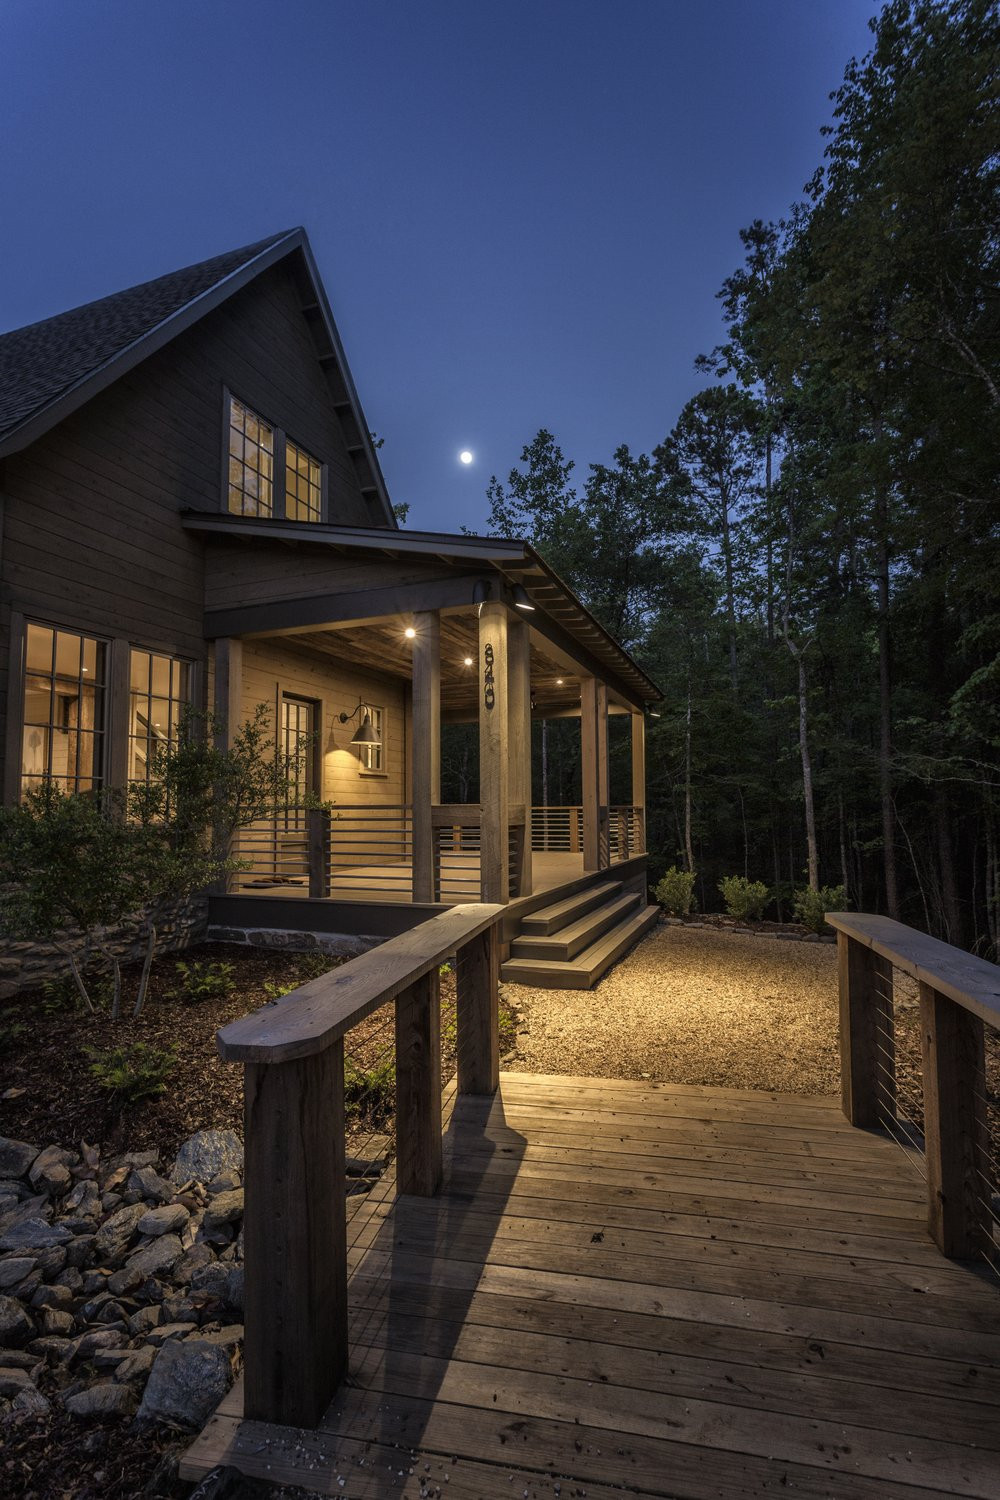 The Montana Home - For Sale